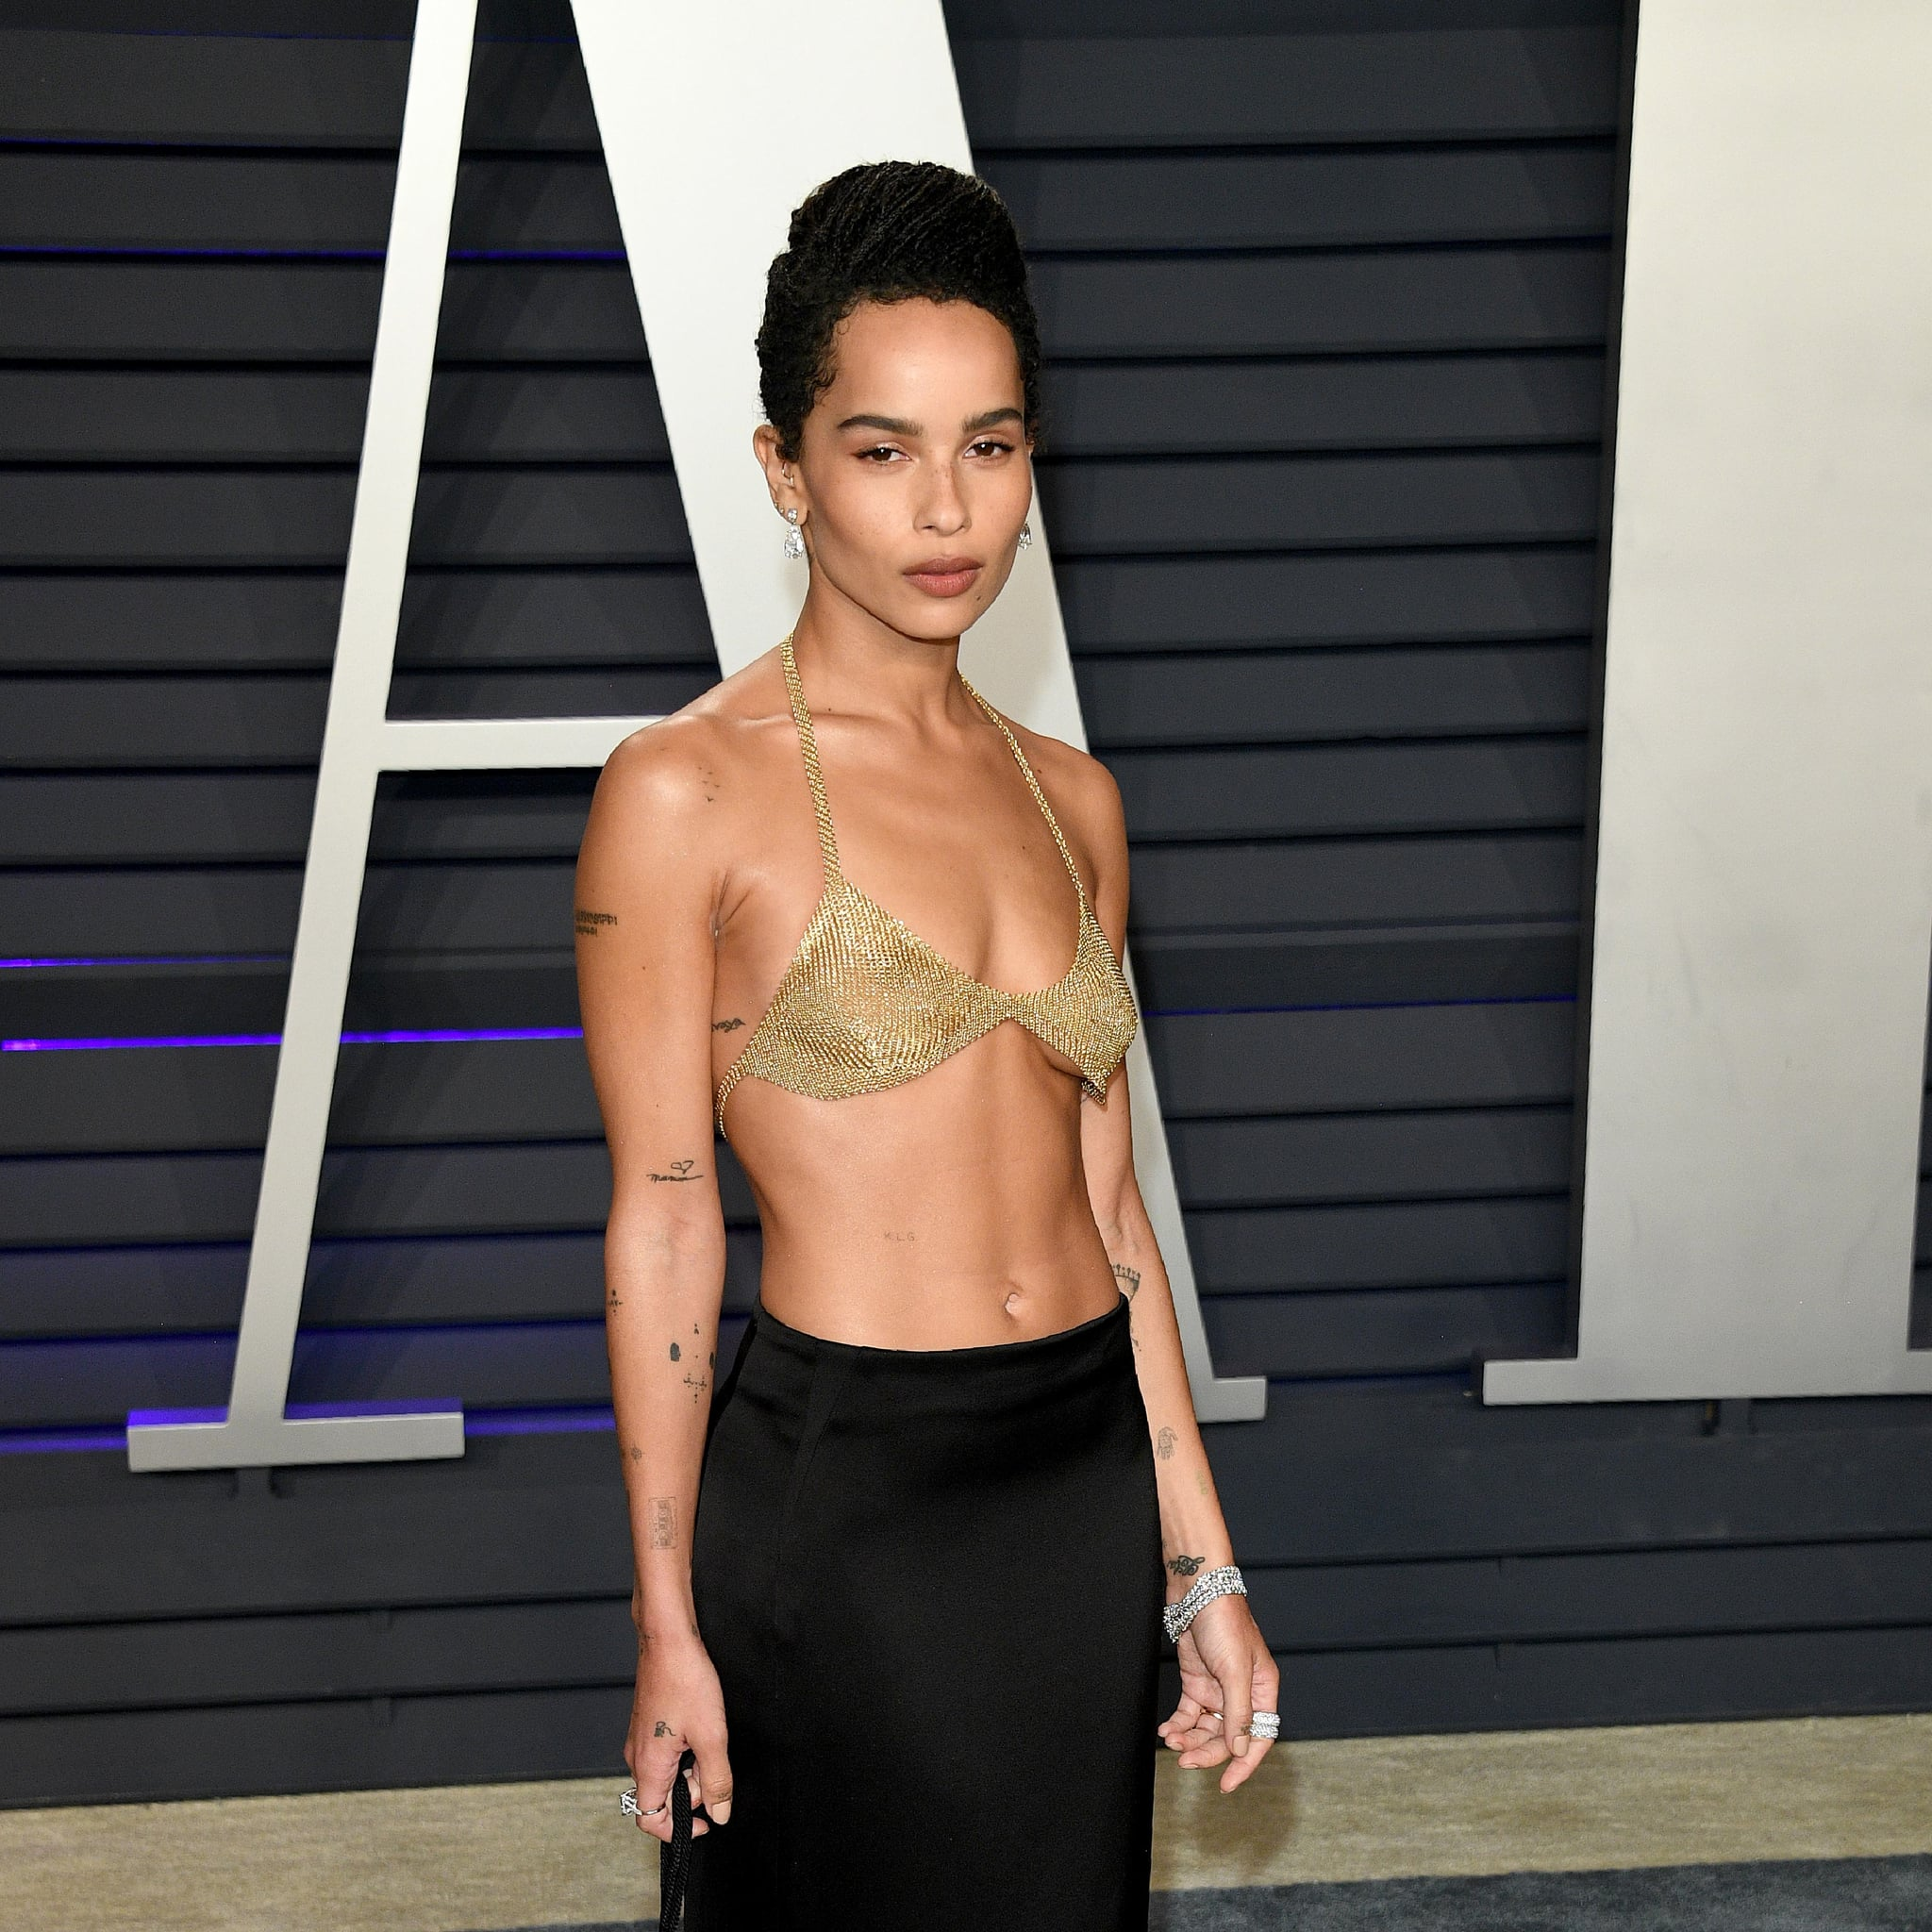 2019 Zoe Kravitz nudes (55 foto and video), Pussy, Fappening, Twitter, swimsuit 2015